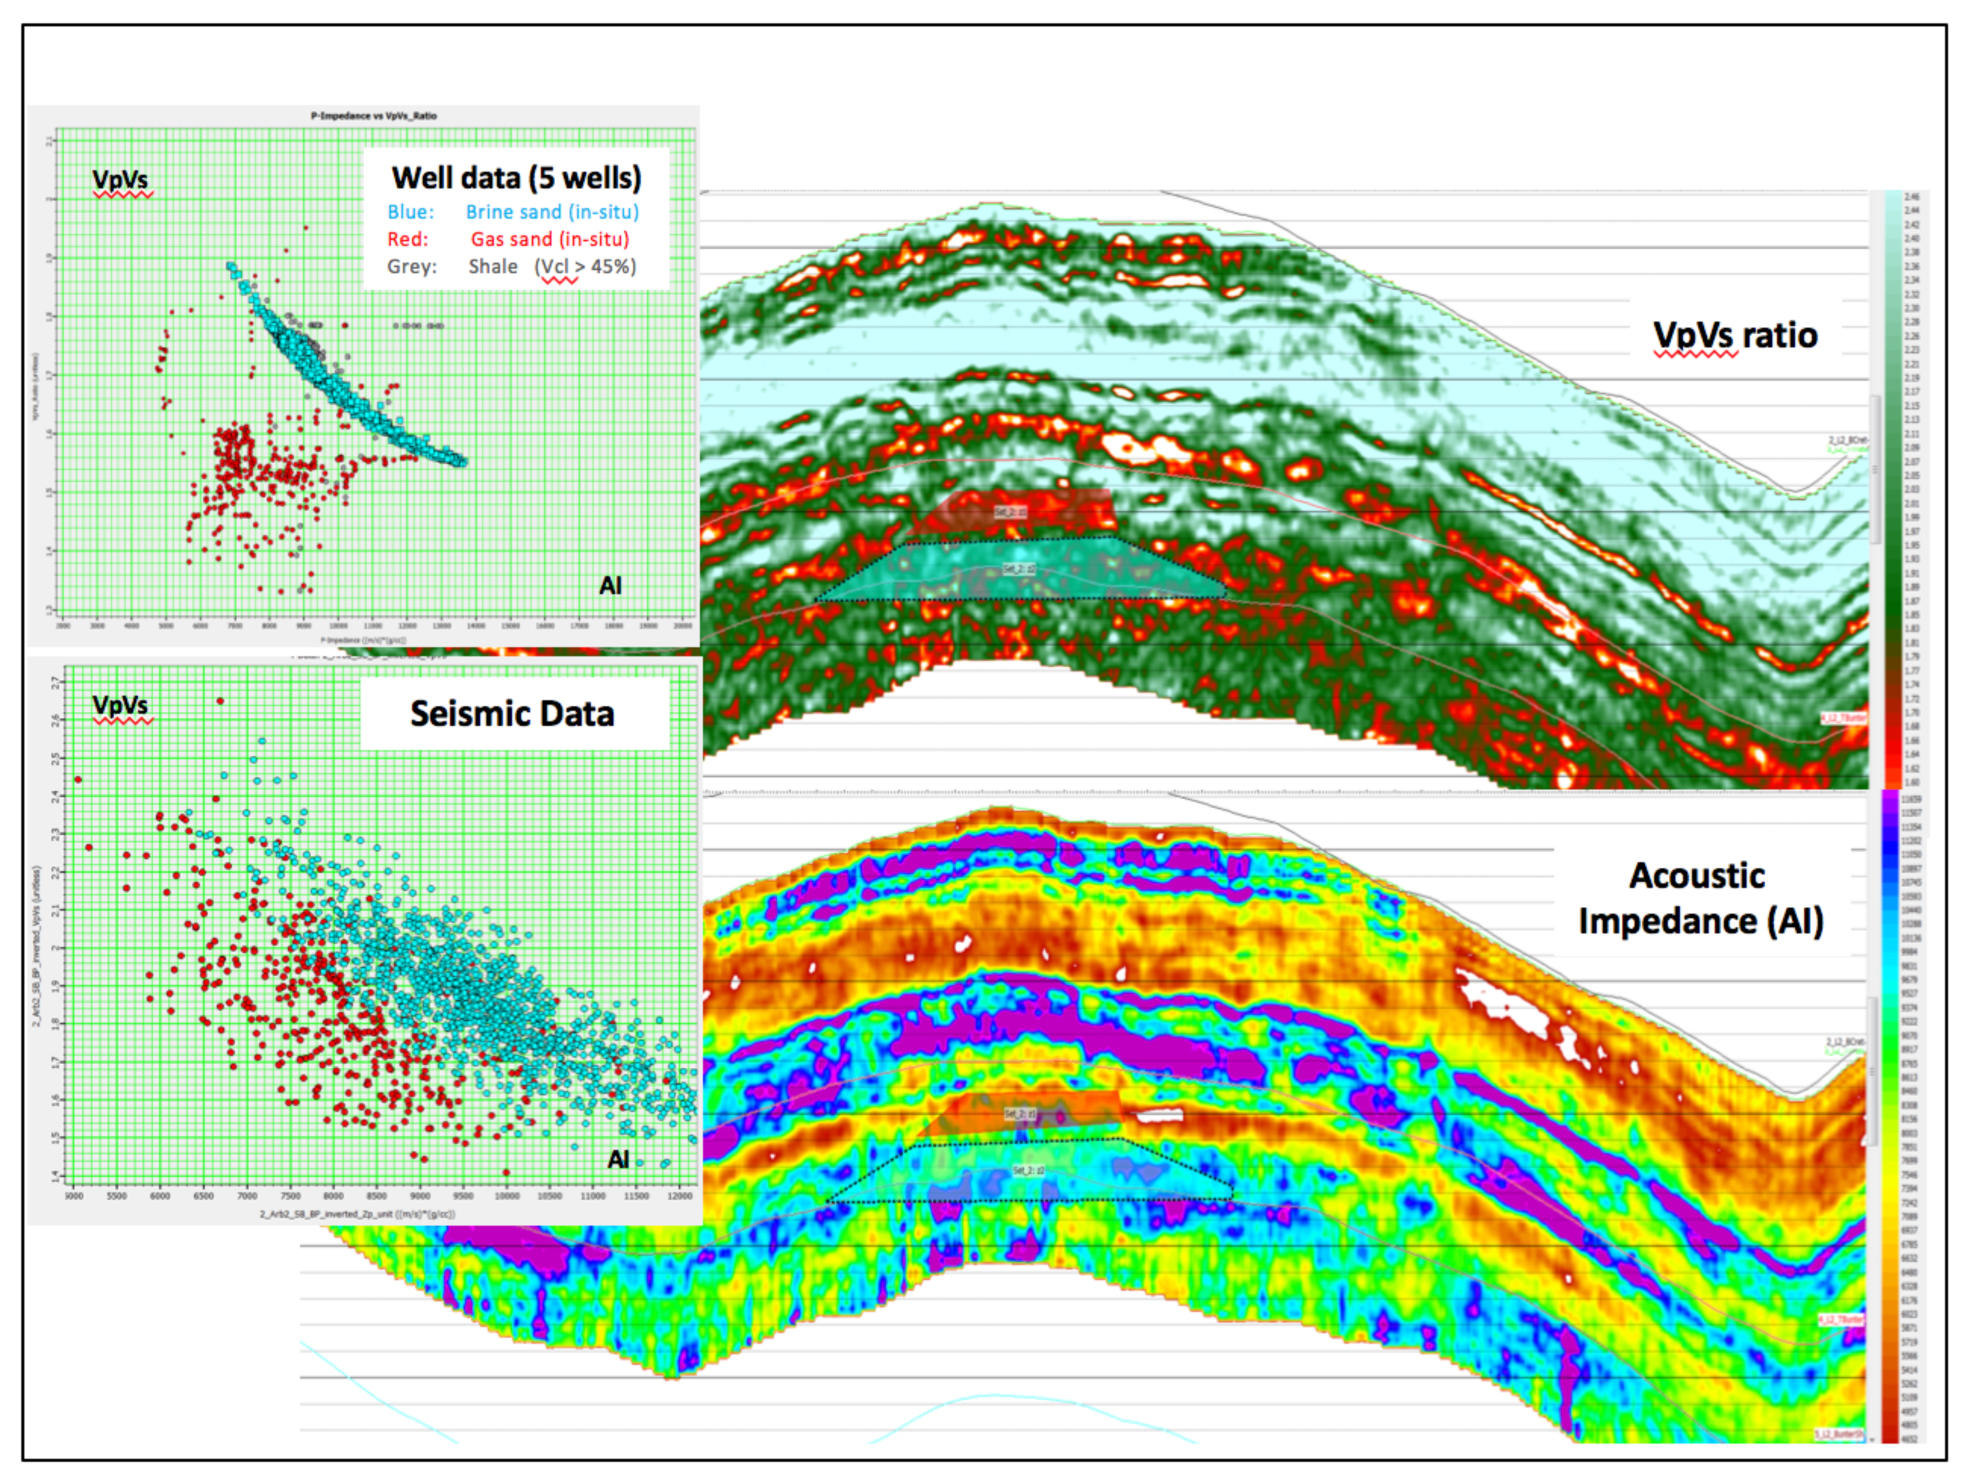 CMY blended attributes highlighting stratigraphic subtleties